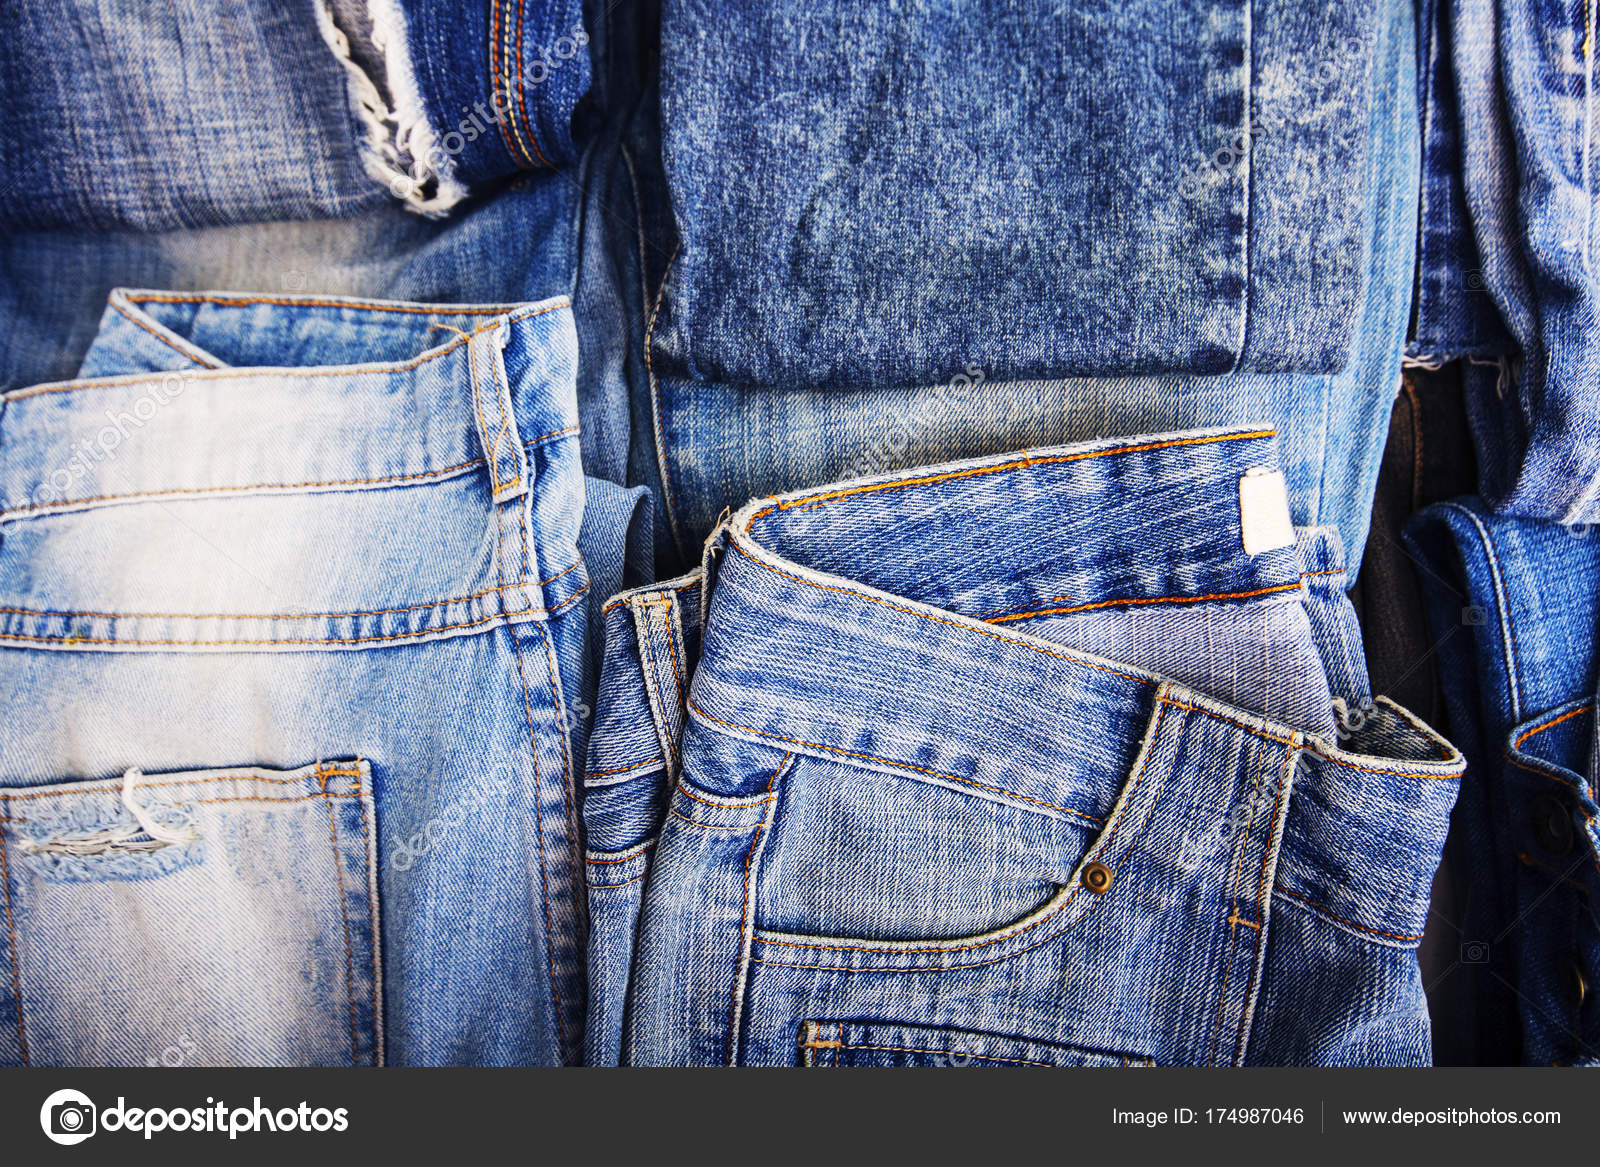 Denim Jeans Background With Seam Of Jeans Fashion Design Stock Photo C Viculia 174987046